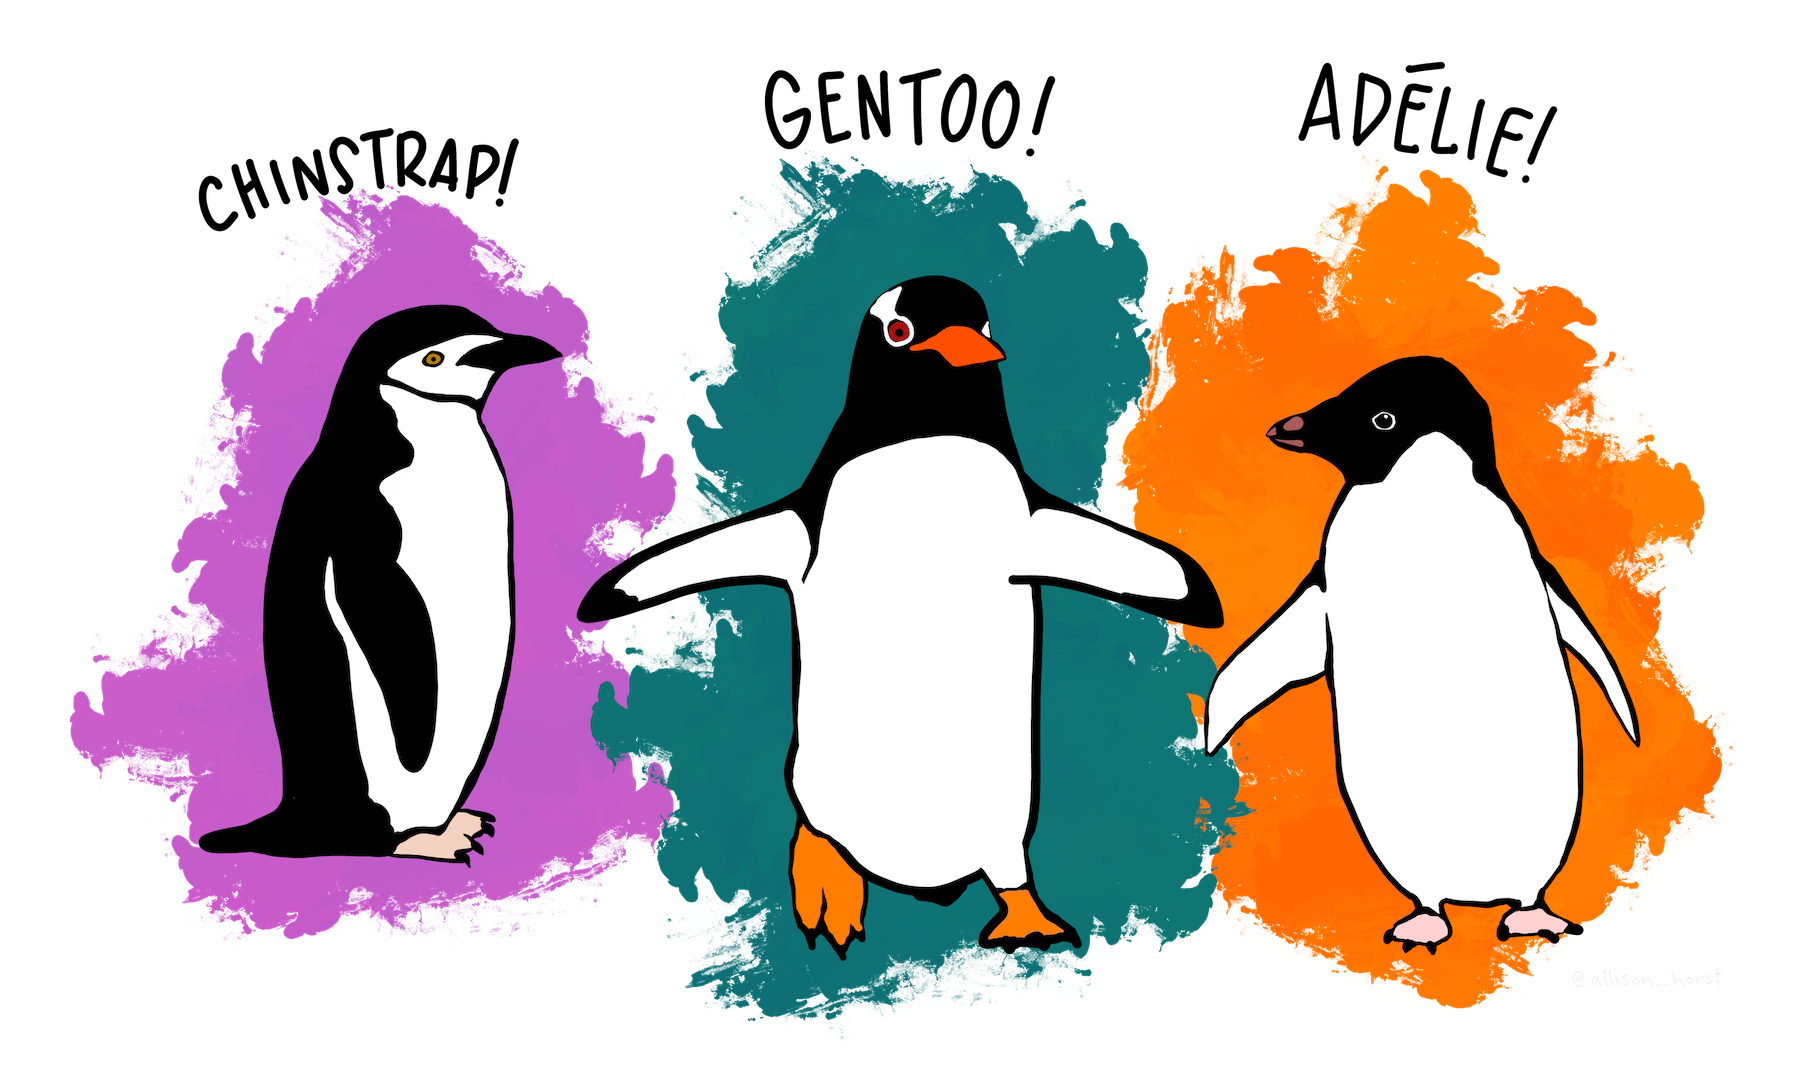 lter_penguins